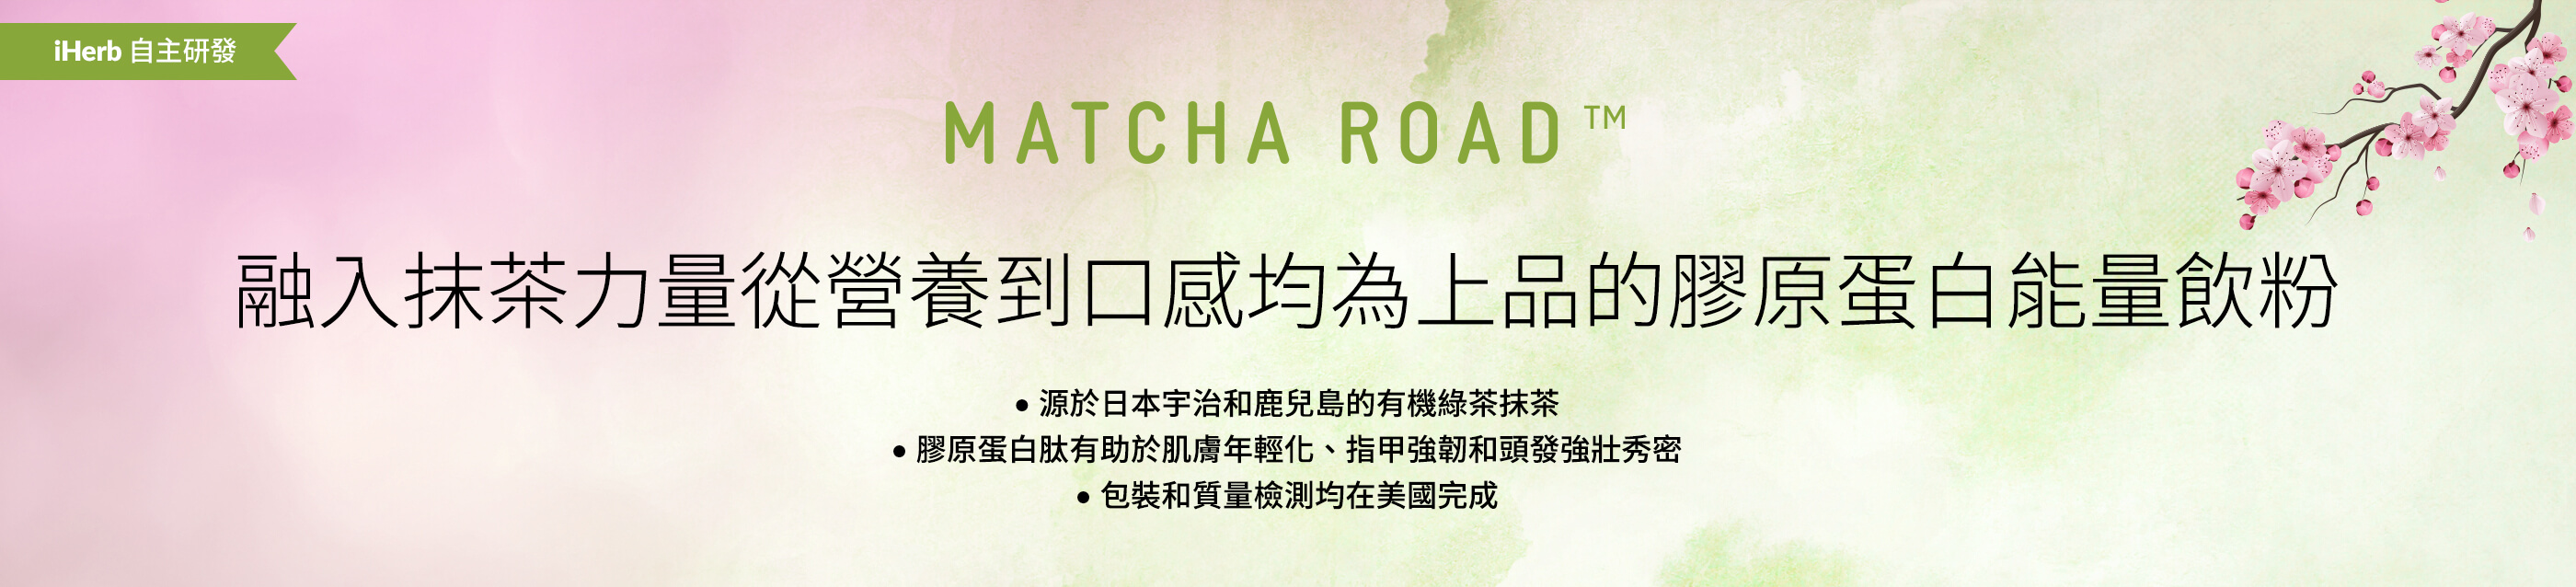 Matcha Road main banner